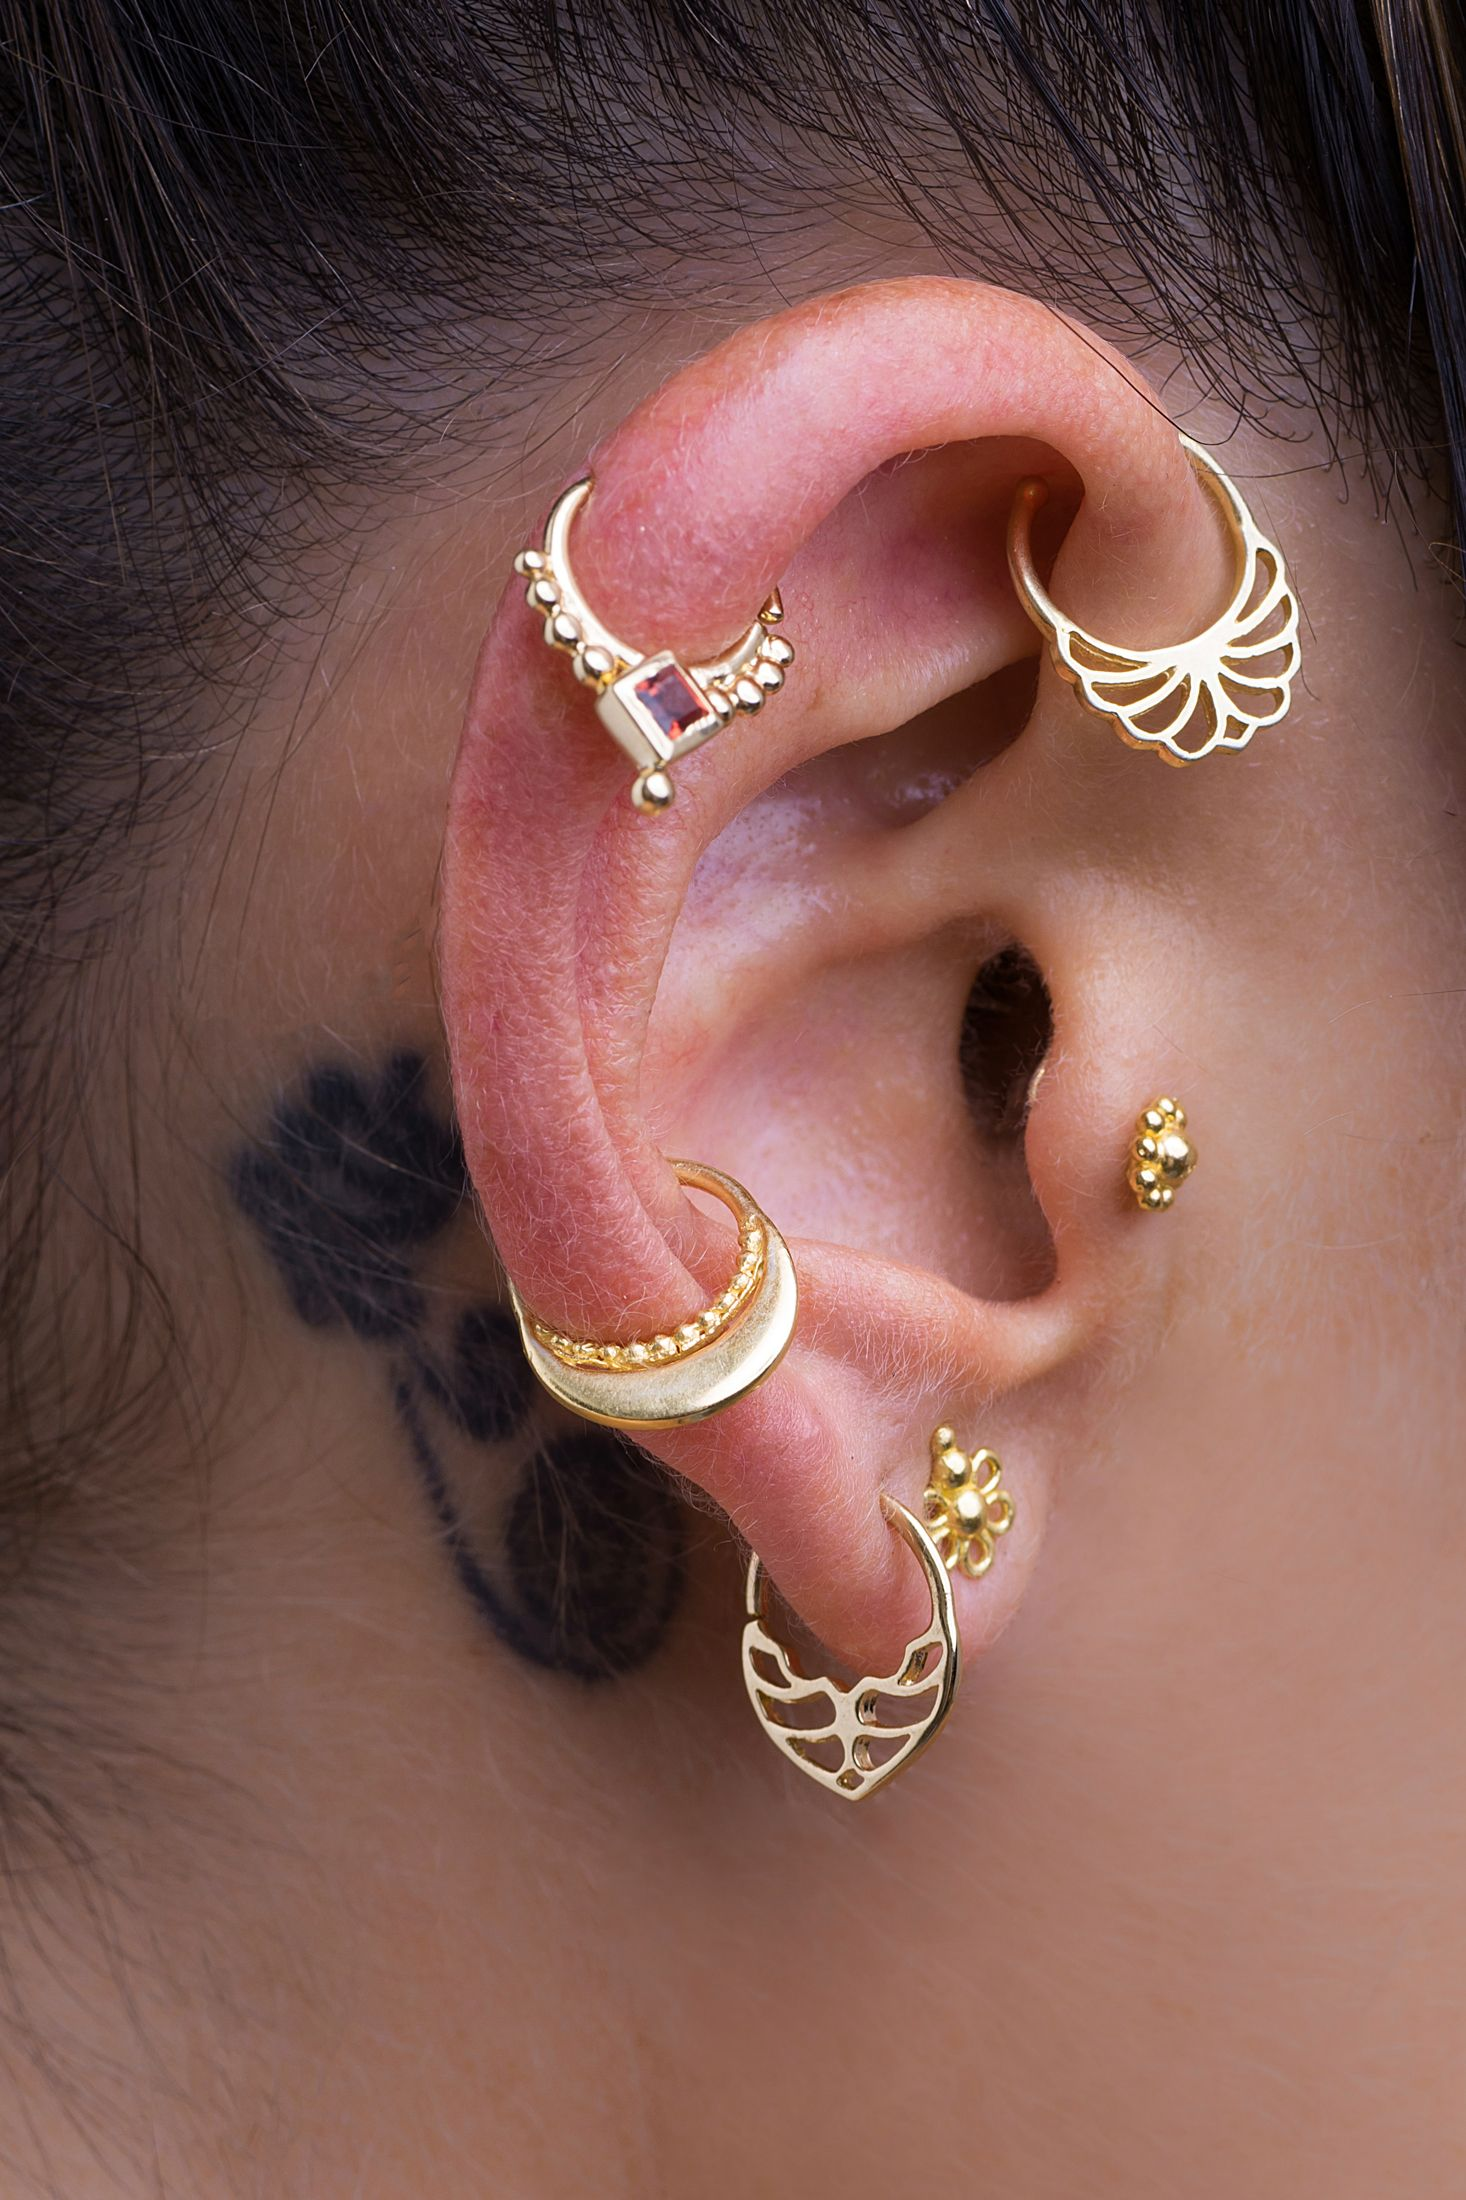 Body Piercing Jewelry Loyal 18k Yellow Gold Over Star Nose Stud Cartilage Earring Helix Stud Piercing Tragus